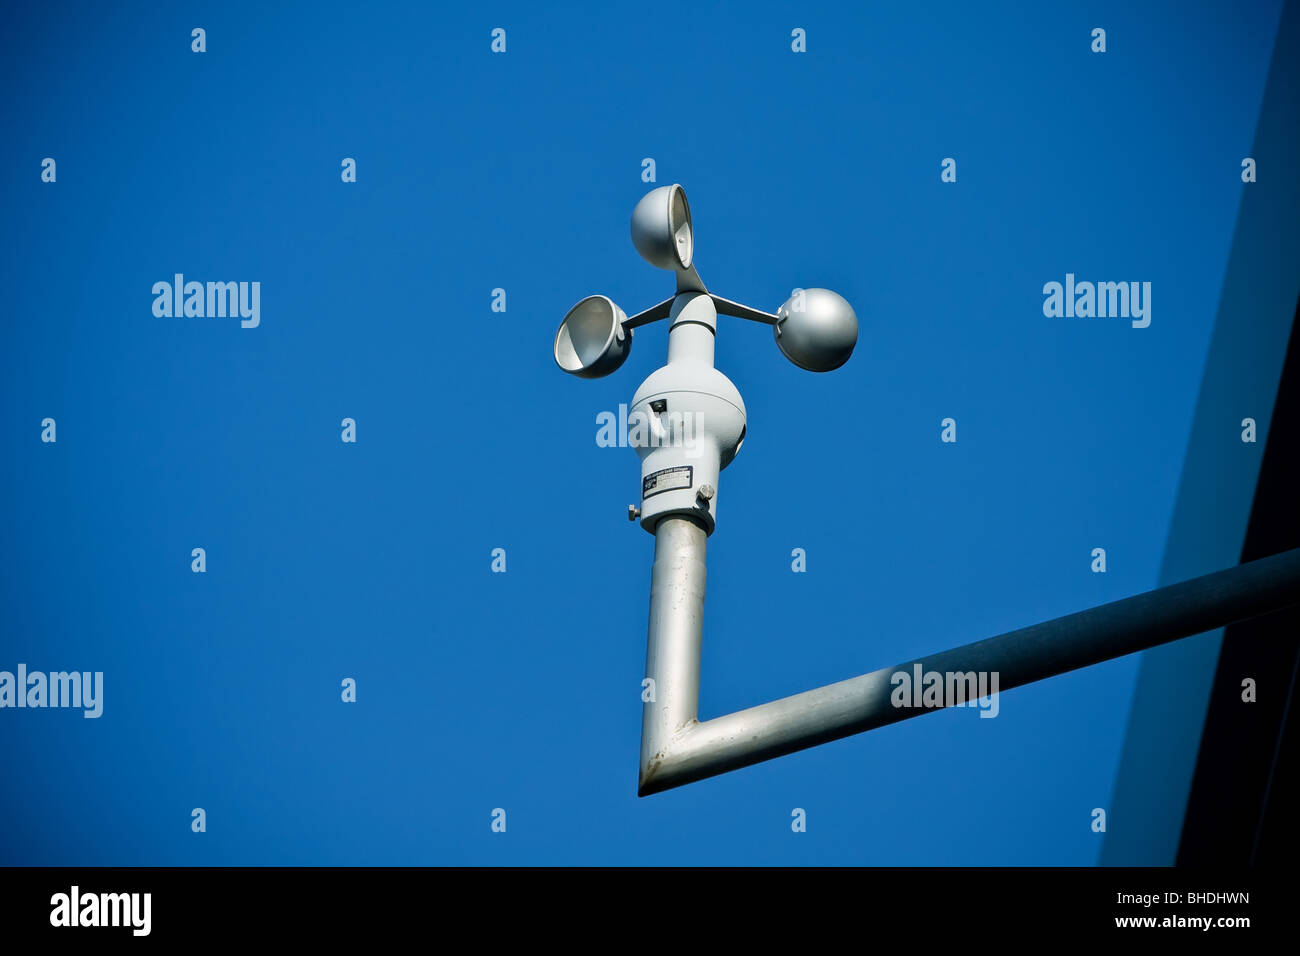 Anemometer at a meteorological station - Stock Image